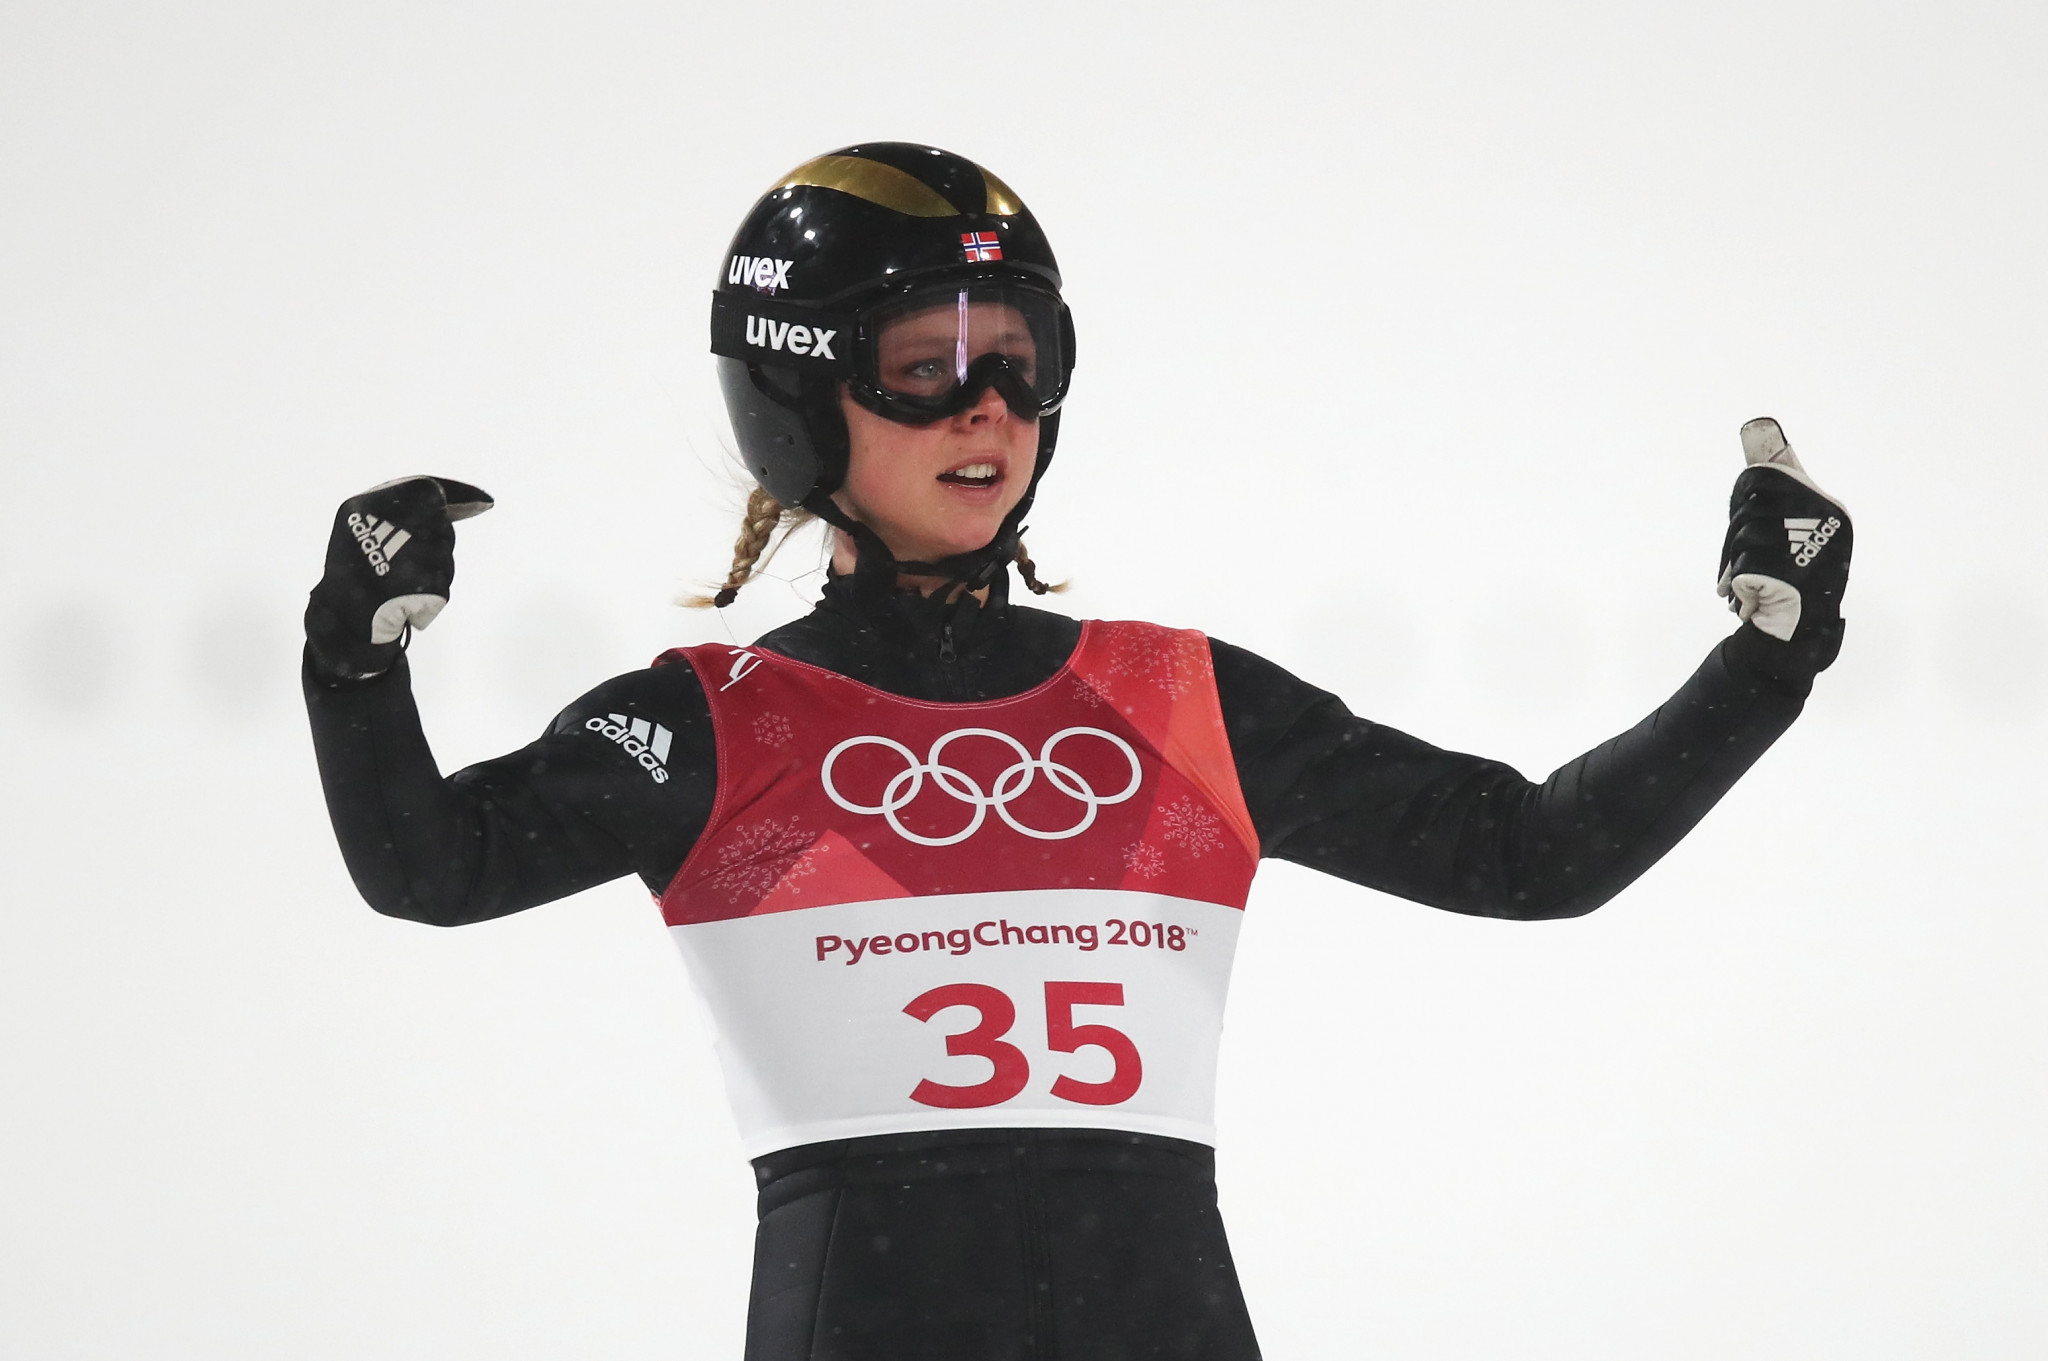 Norway's Maren Lundby continued her sensational form by claiming the women's normal hill individual ski jumping gold medal at the Pyeongchang 2018 Winter Olympic Games here this evening ©Getty Images